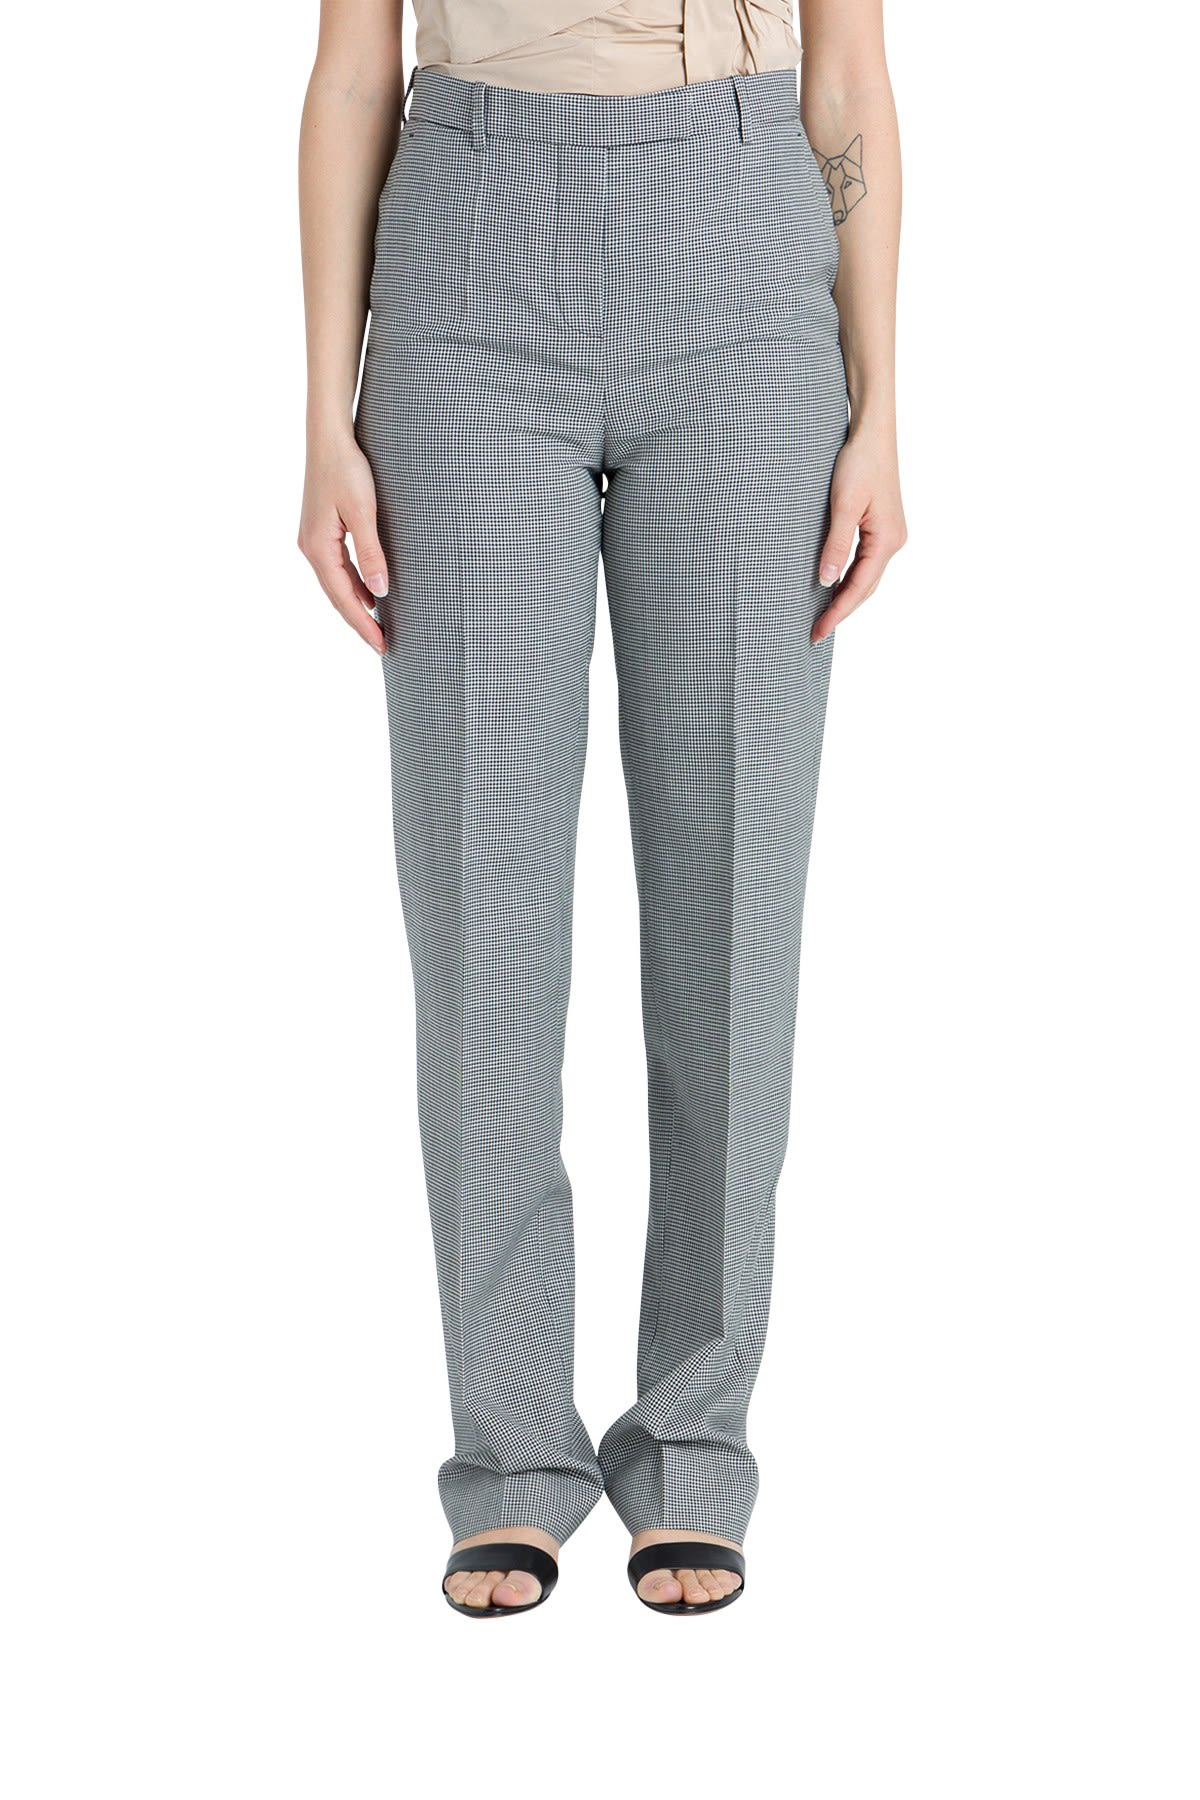 Givenchy Split Houndstooth Trousers